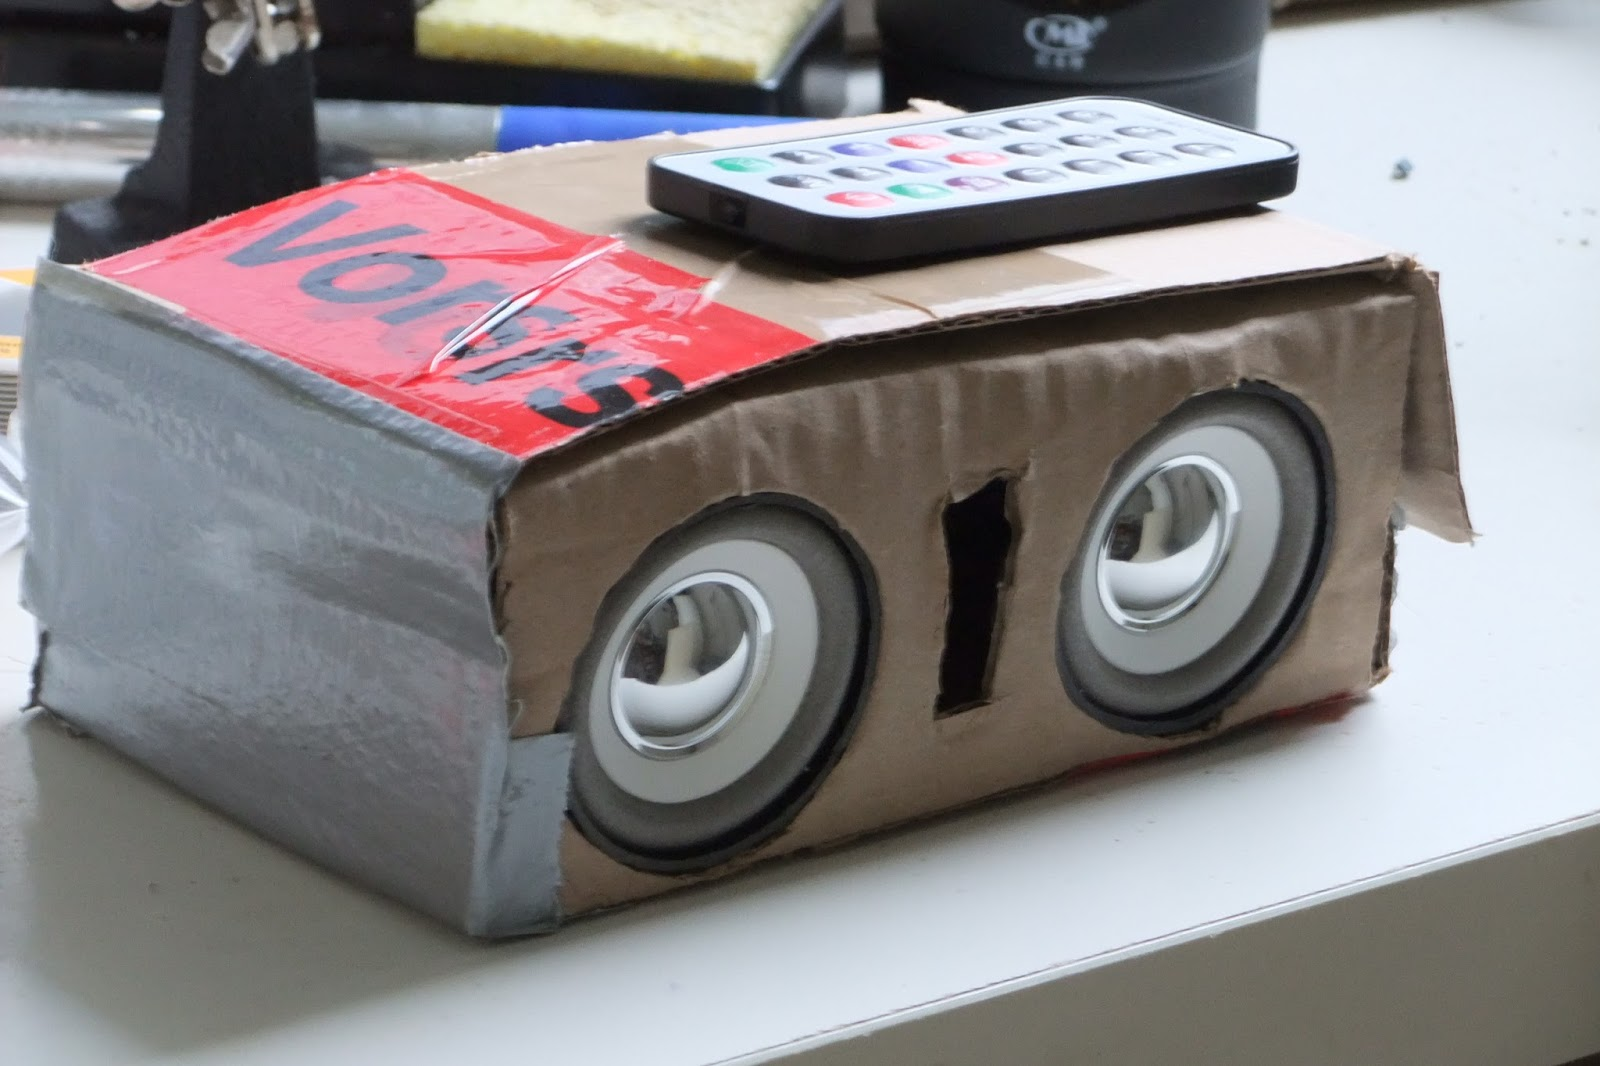 Koepi's Blog: Mobile Boombox with PAM8403